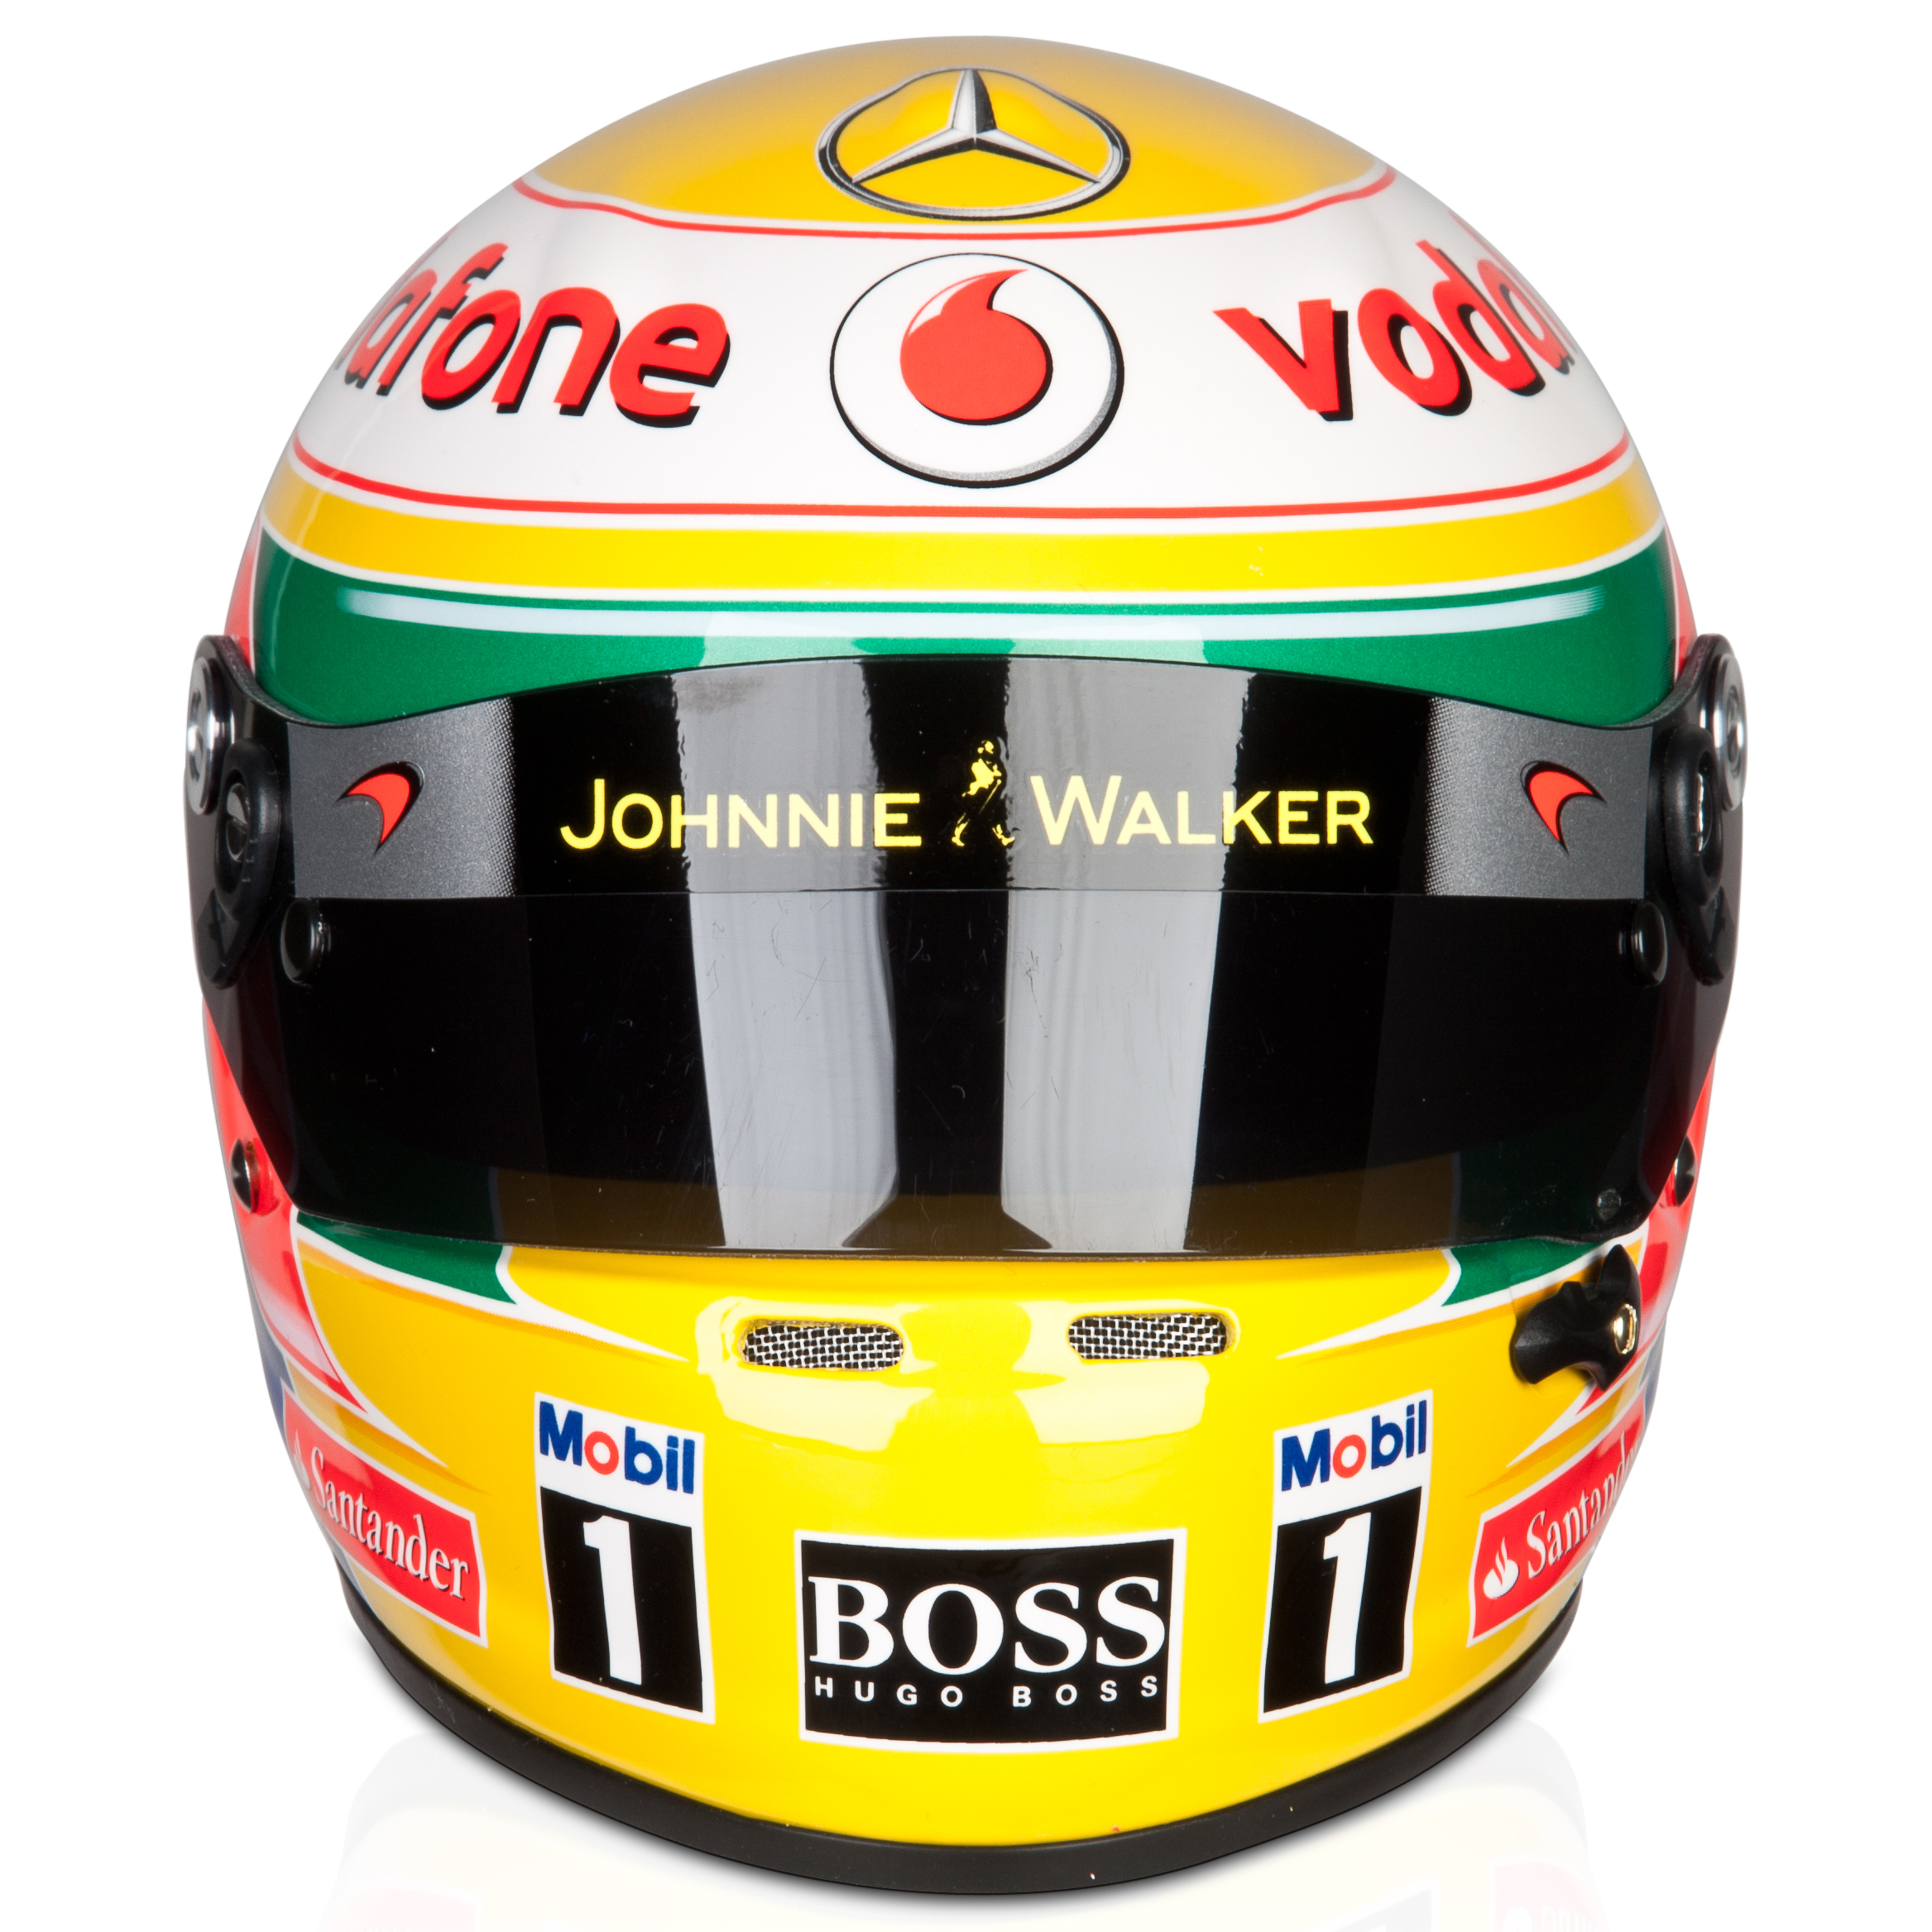 Vodafone McLaren Mercedes Lewis Hamilton 2012 Helmet 1:2 Scale